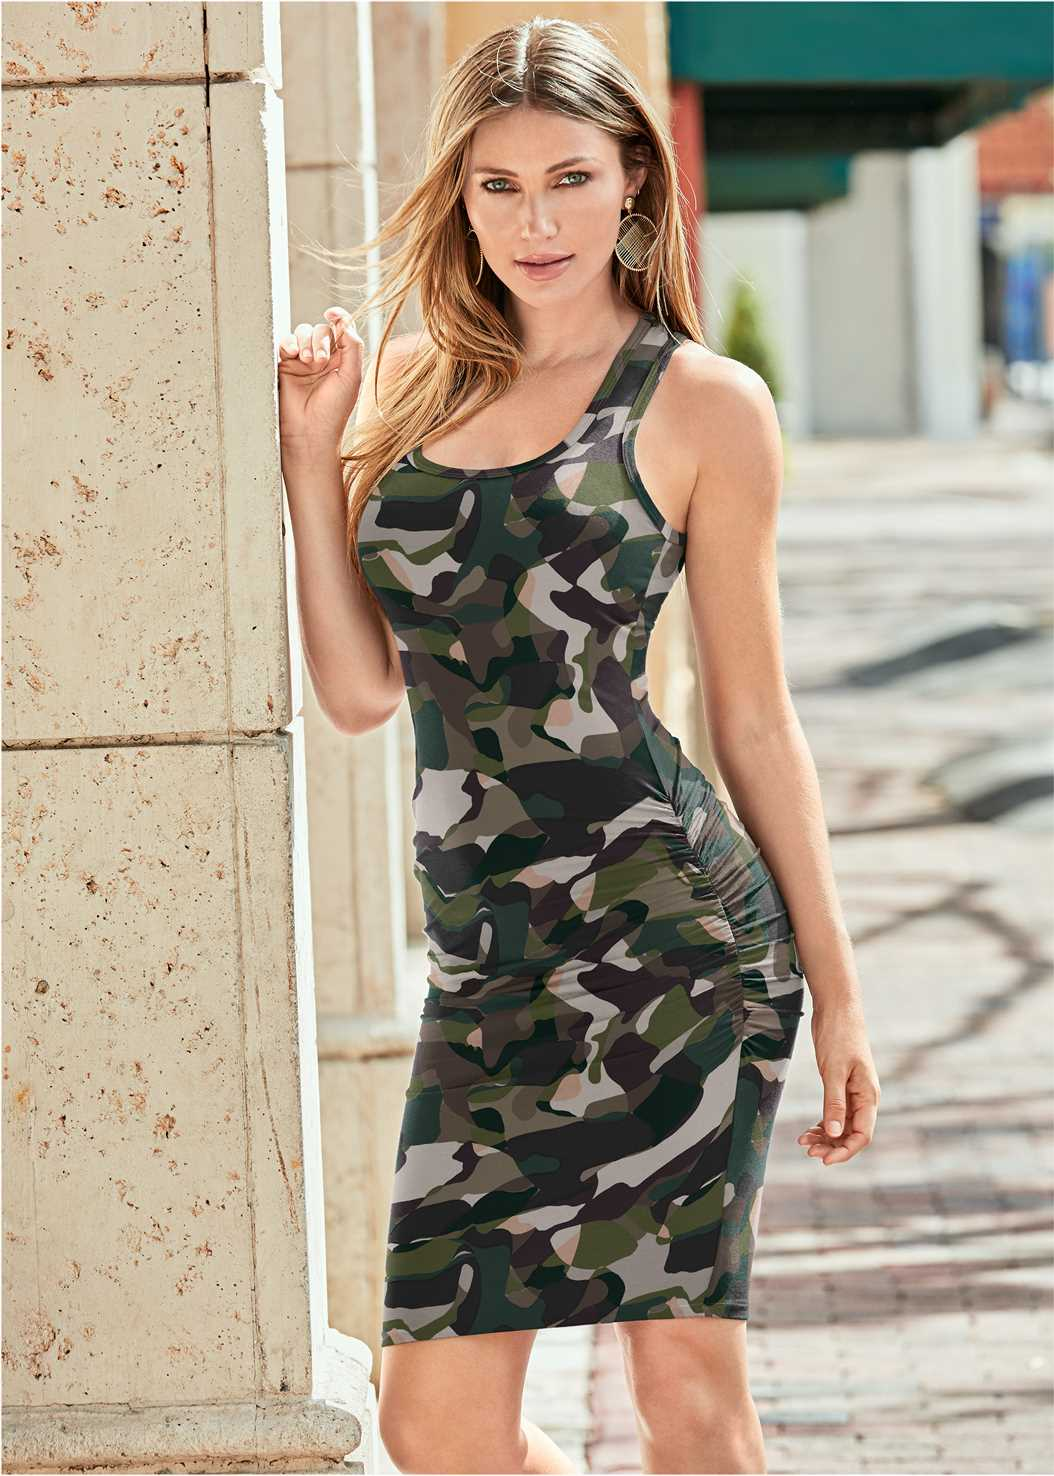 Sleeveless Ruched Bodycon Midi Dress,Push Up Bra Buy 2 For $40,Confidence Shaping Romper,Ribbed Hooded Duster,Jean Jacket